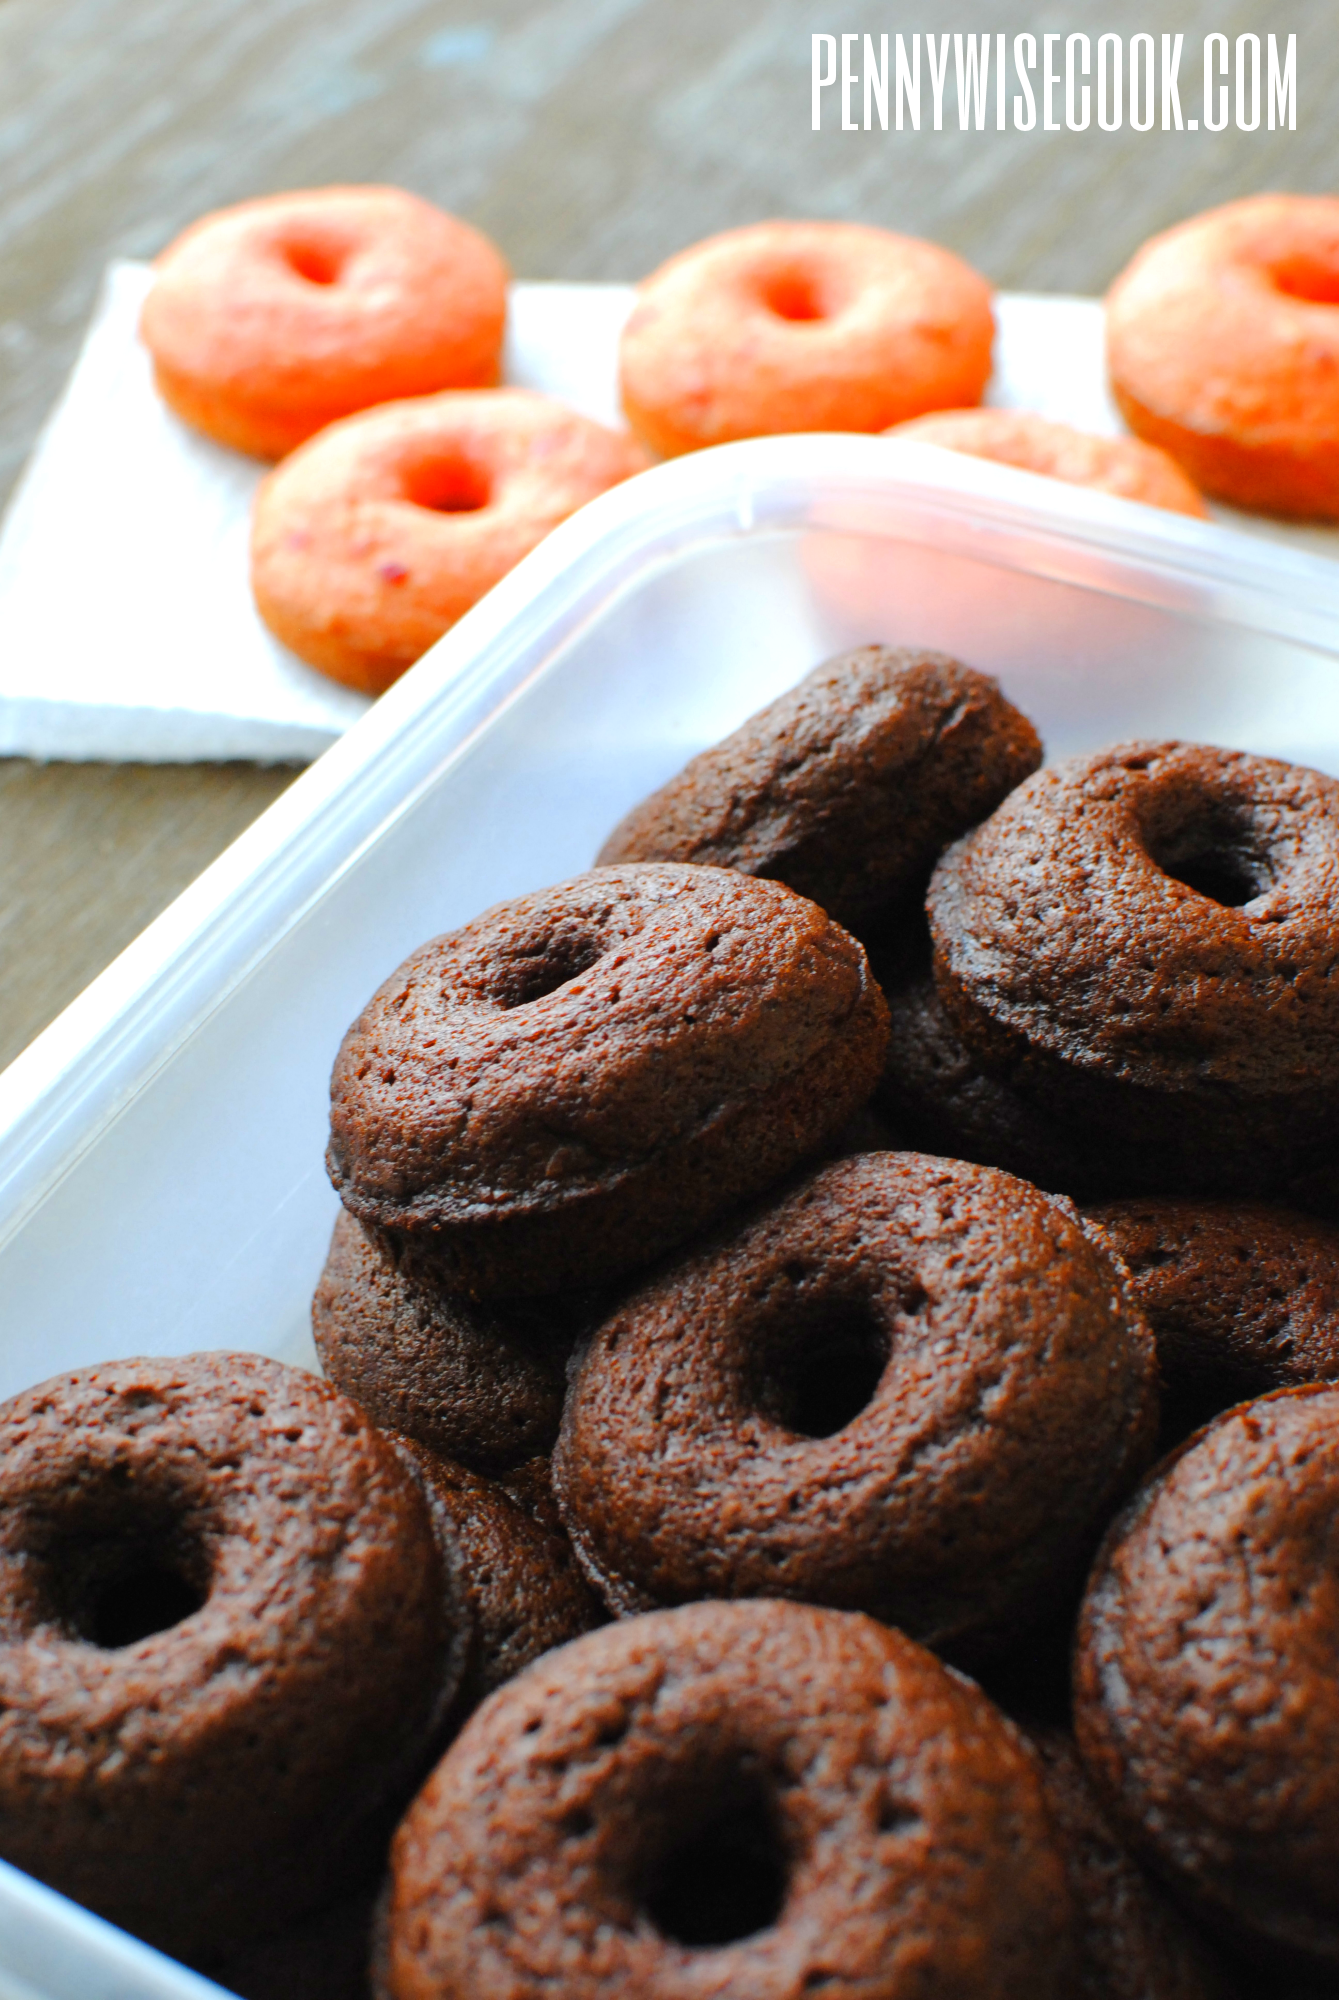 Fried Cake Donuts Donuts no Icing 685x1024 Cake